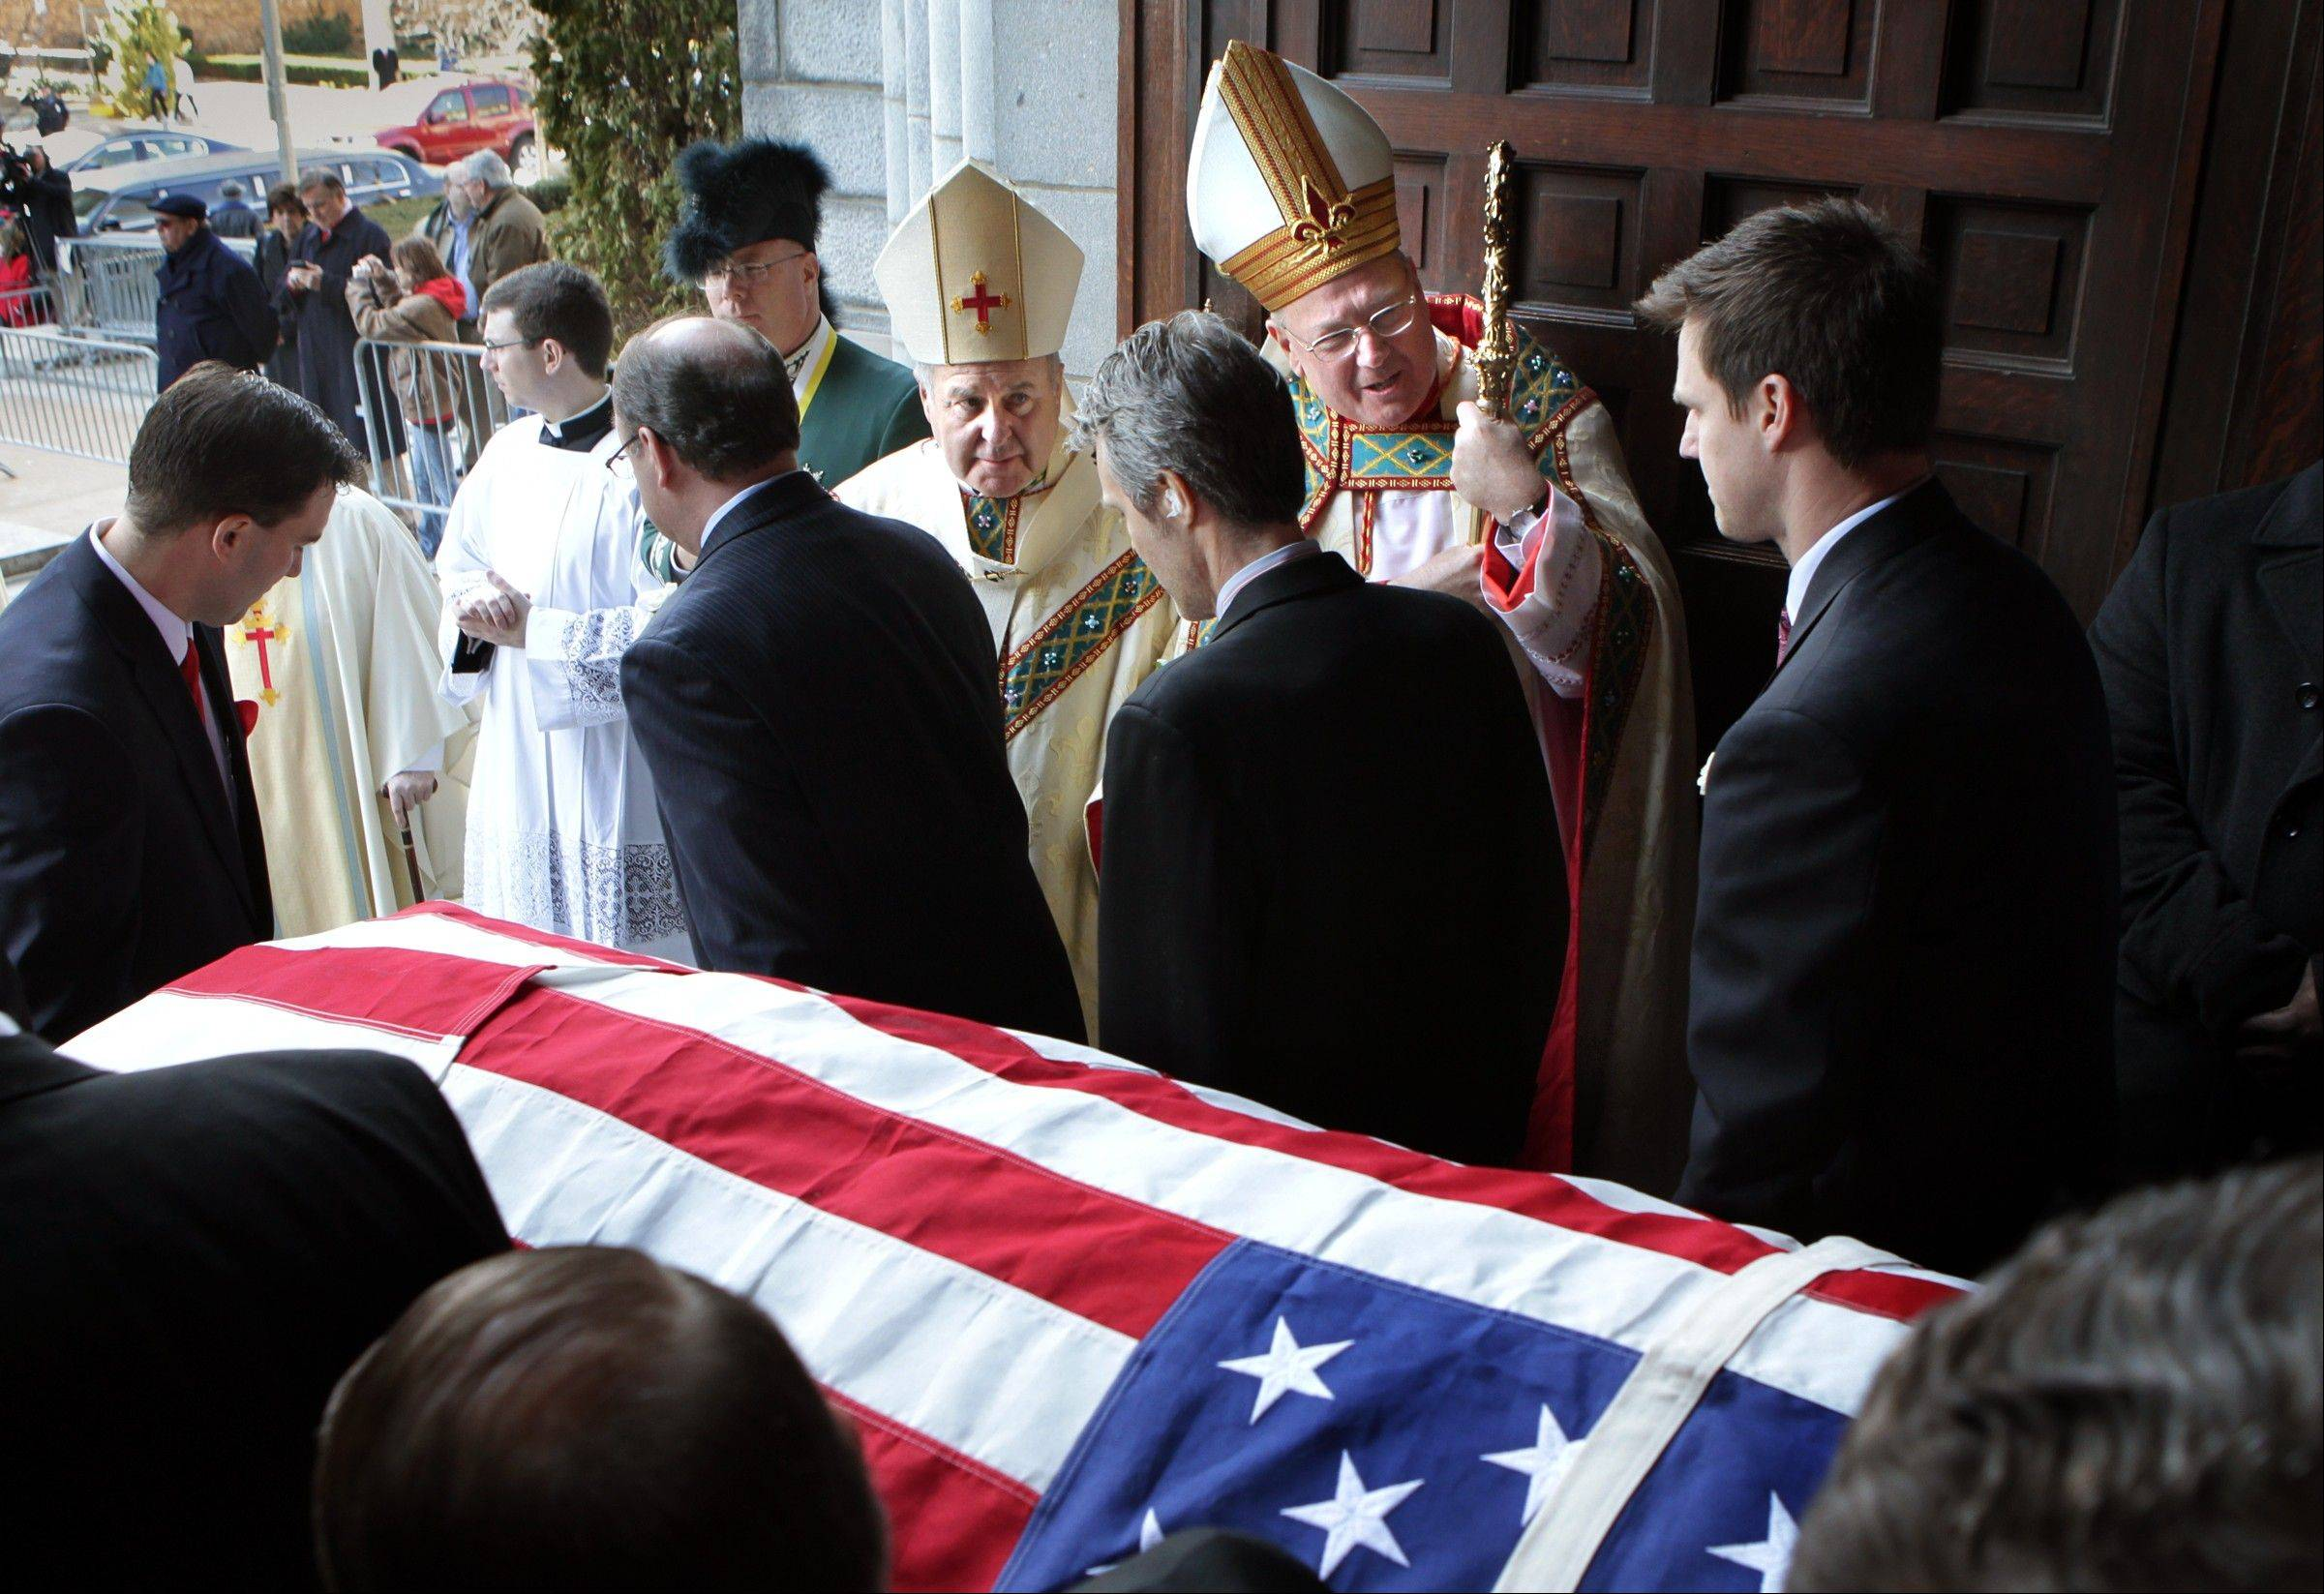 Cardinal Timothy Dolan, second from right, the Archbishop of New York, and St. Louis Archbishop Robert Carlson watch as pallbearers take the casket containing the body of former St. Louis Cardinals baseball player Stan Musial out of the Cathedral Basilica of St. Louis following Musial's funeral Mass on Saturday, Jan. 26, 2013 in St. Louis.